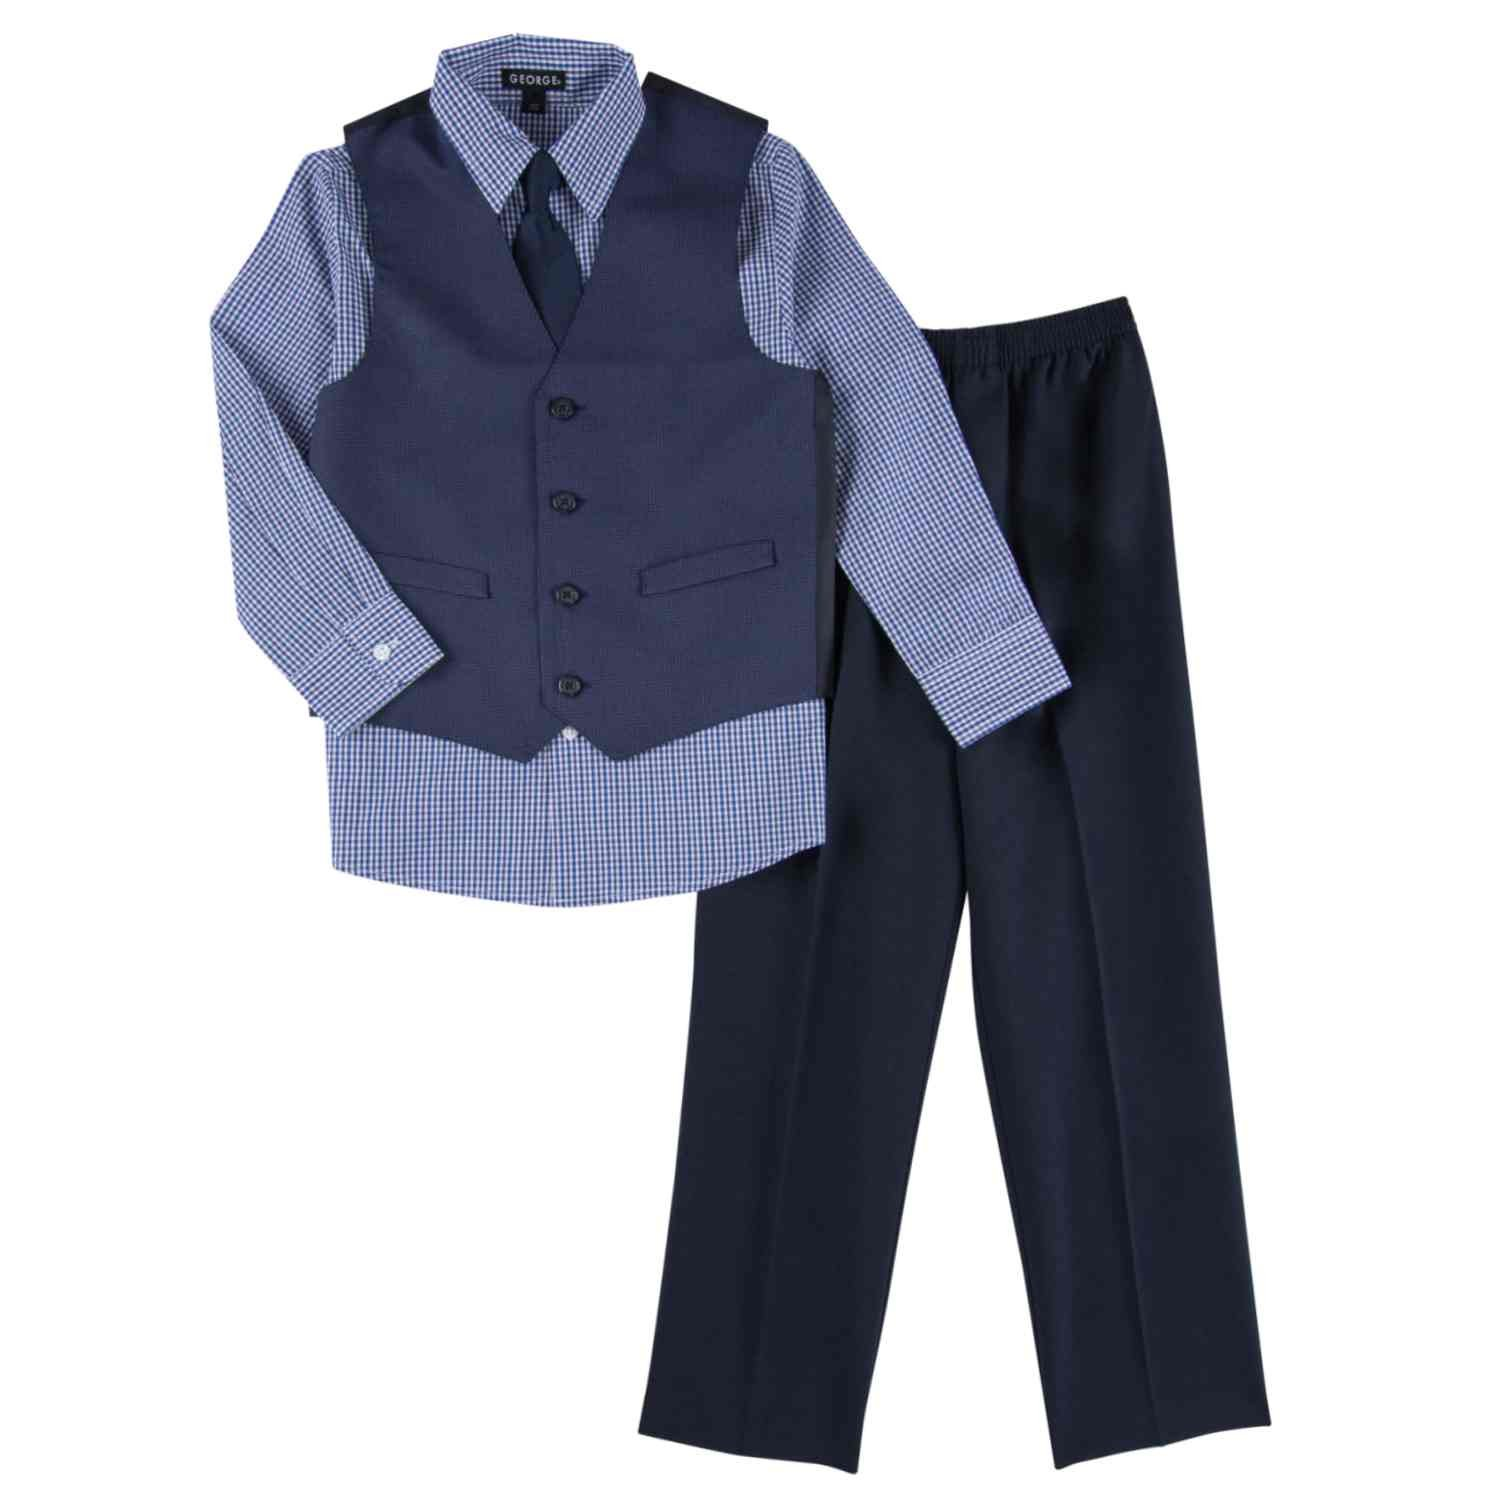 George Toddler & Boys 4 Piece Blue Holiday Dress Up Outfit Suit Tie & Vest 5